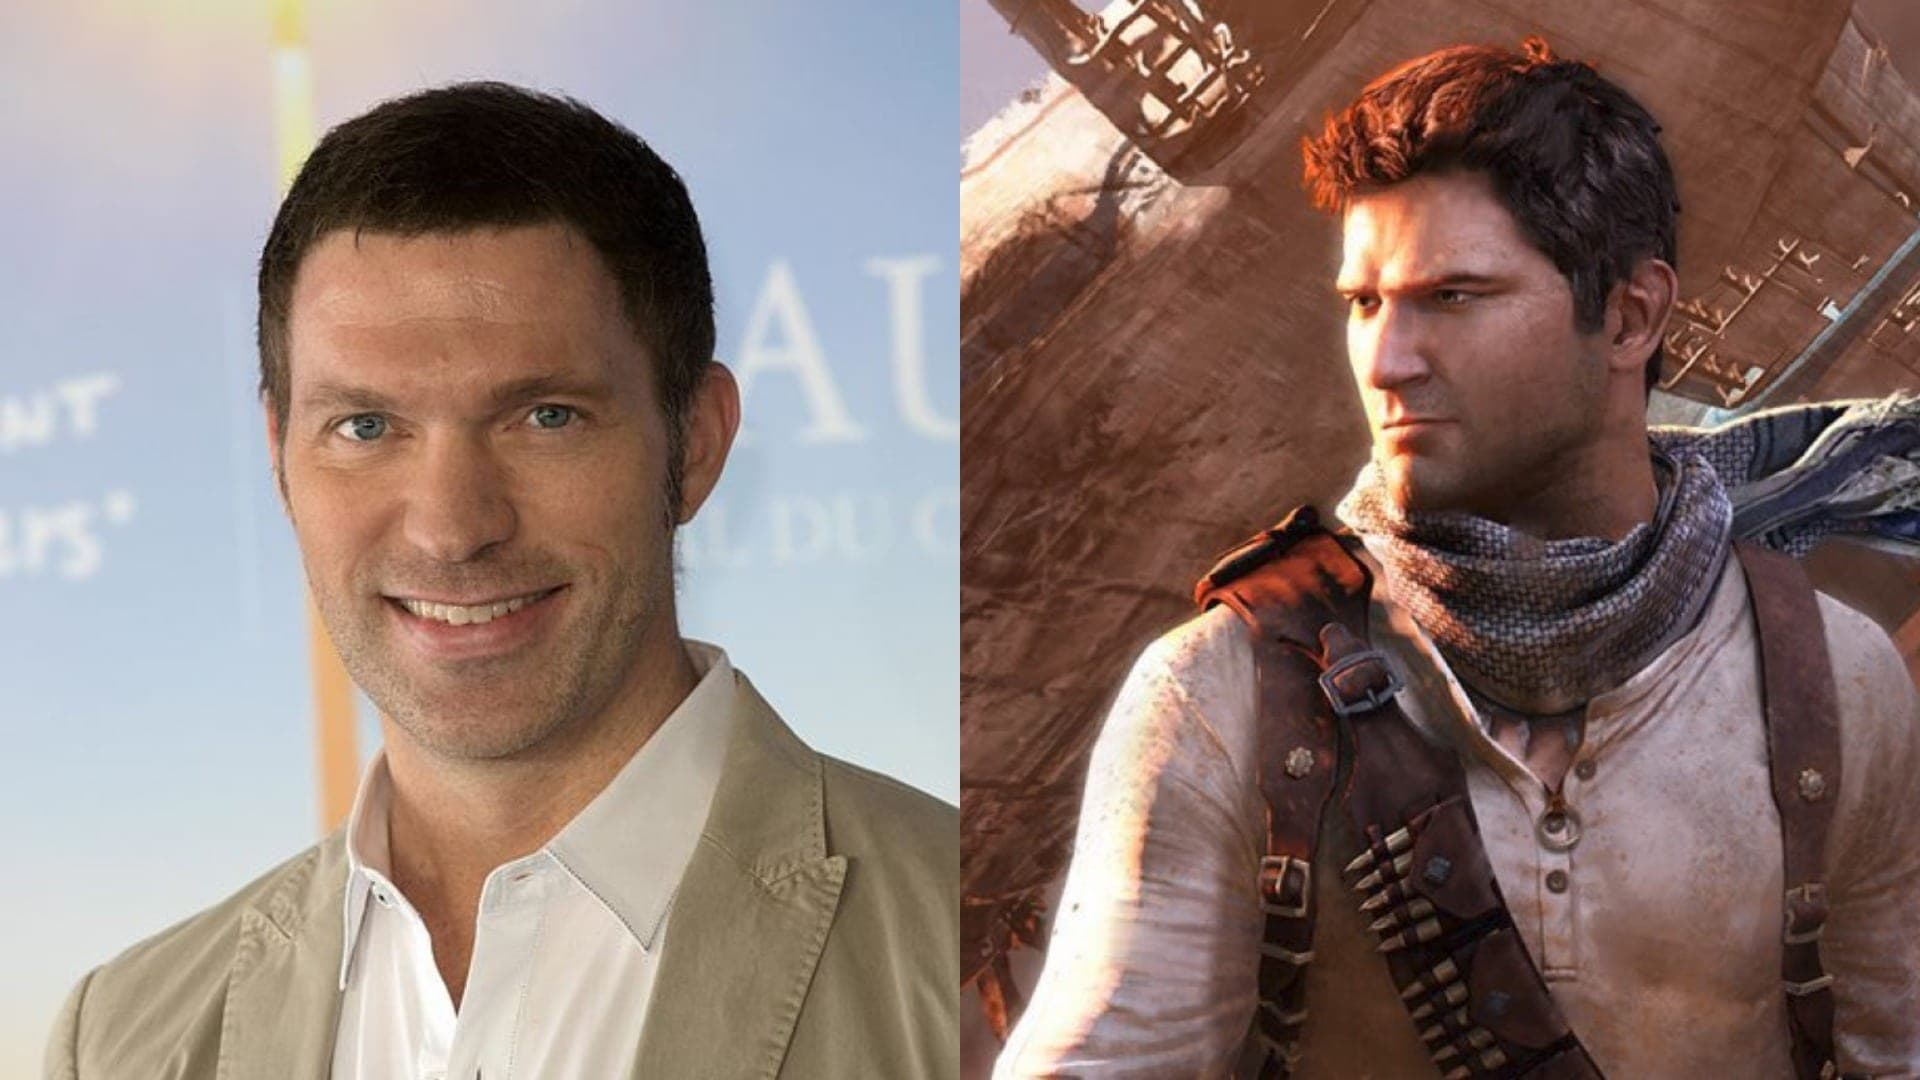 Bumblebee Director Travis Knight To Helm Uncharted Film